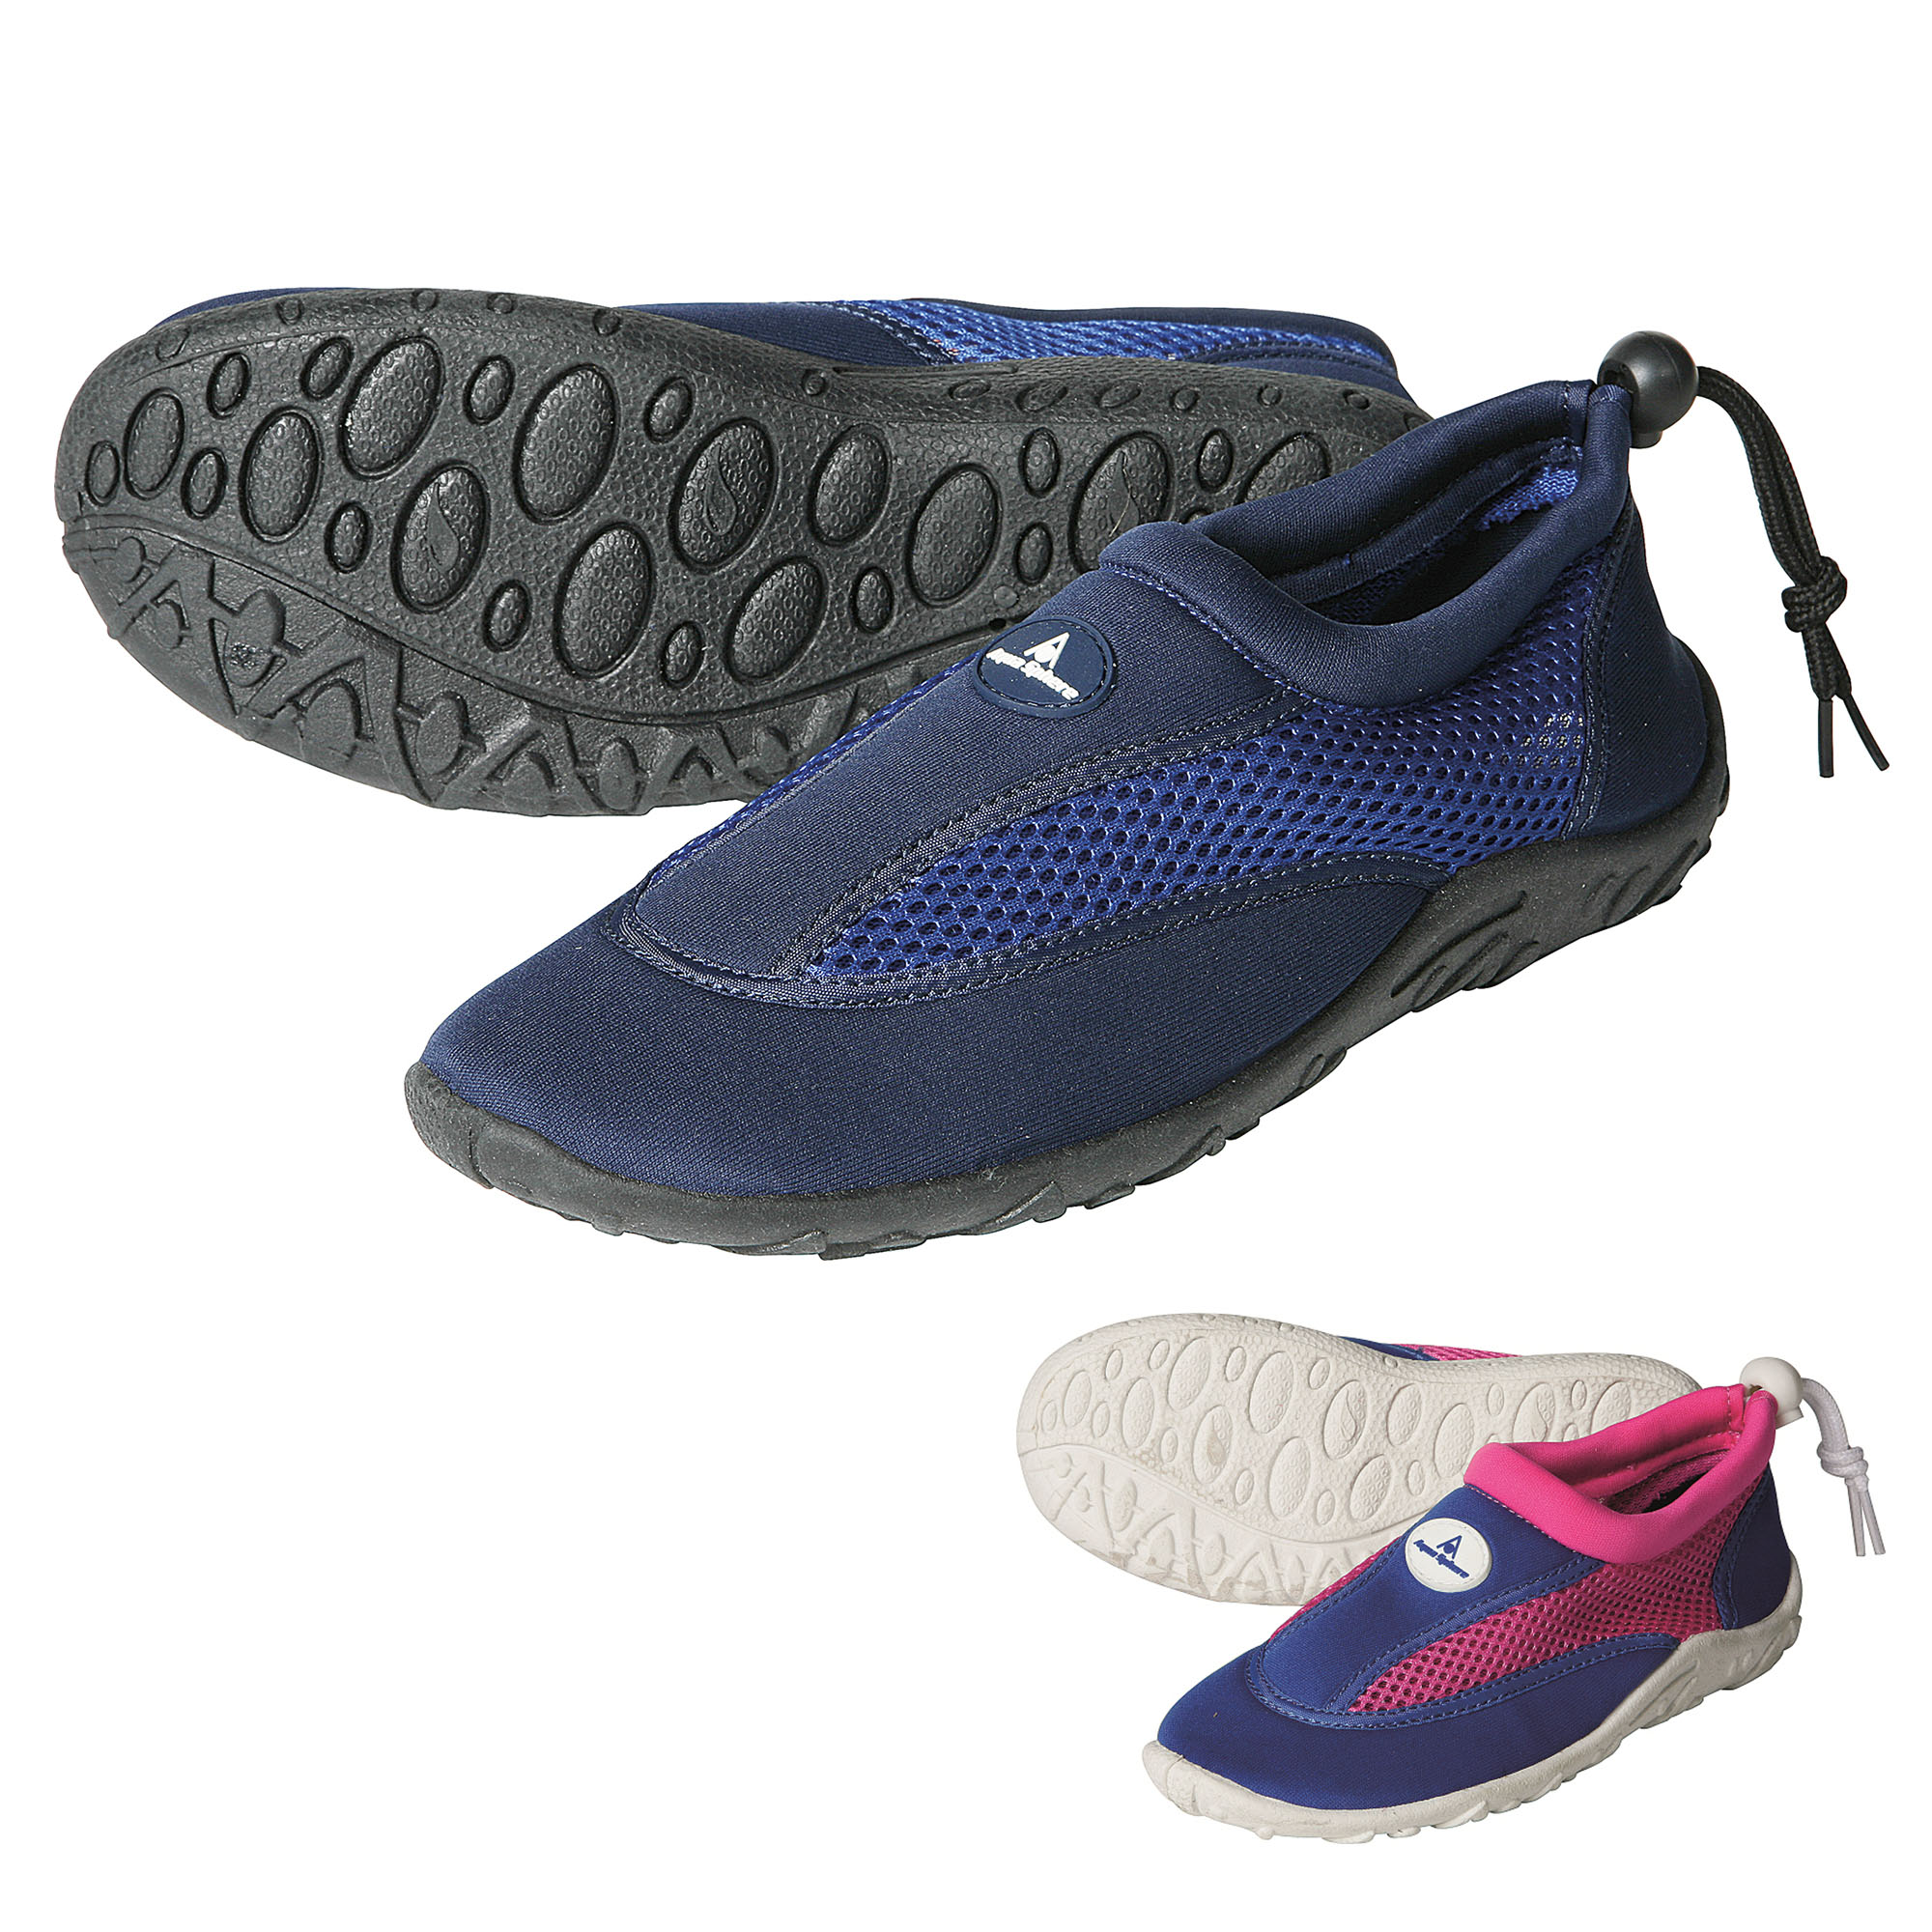 ace579810648 Sentinel Aqua Sphere CANCUN Aqua Shoes Mens Ladies Womens Swimming Diving  Sports Beach